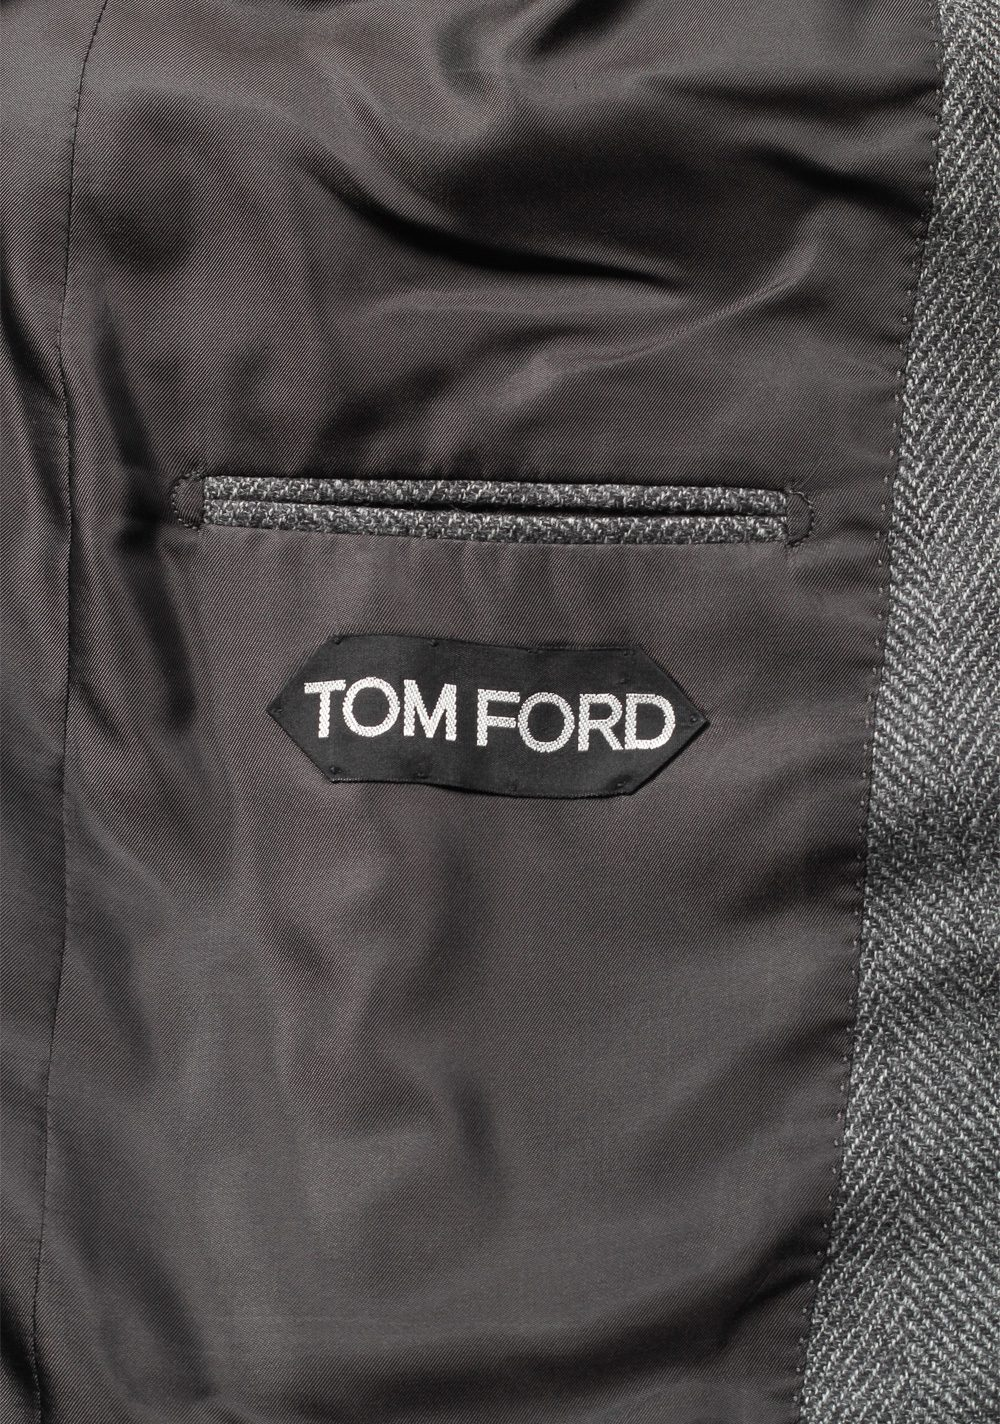 TOM FORD Shelton Gray Suit Size 48 / 38R U.S. In Wool | Costume Limité